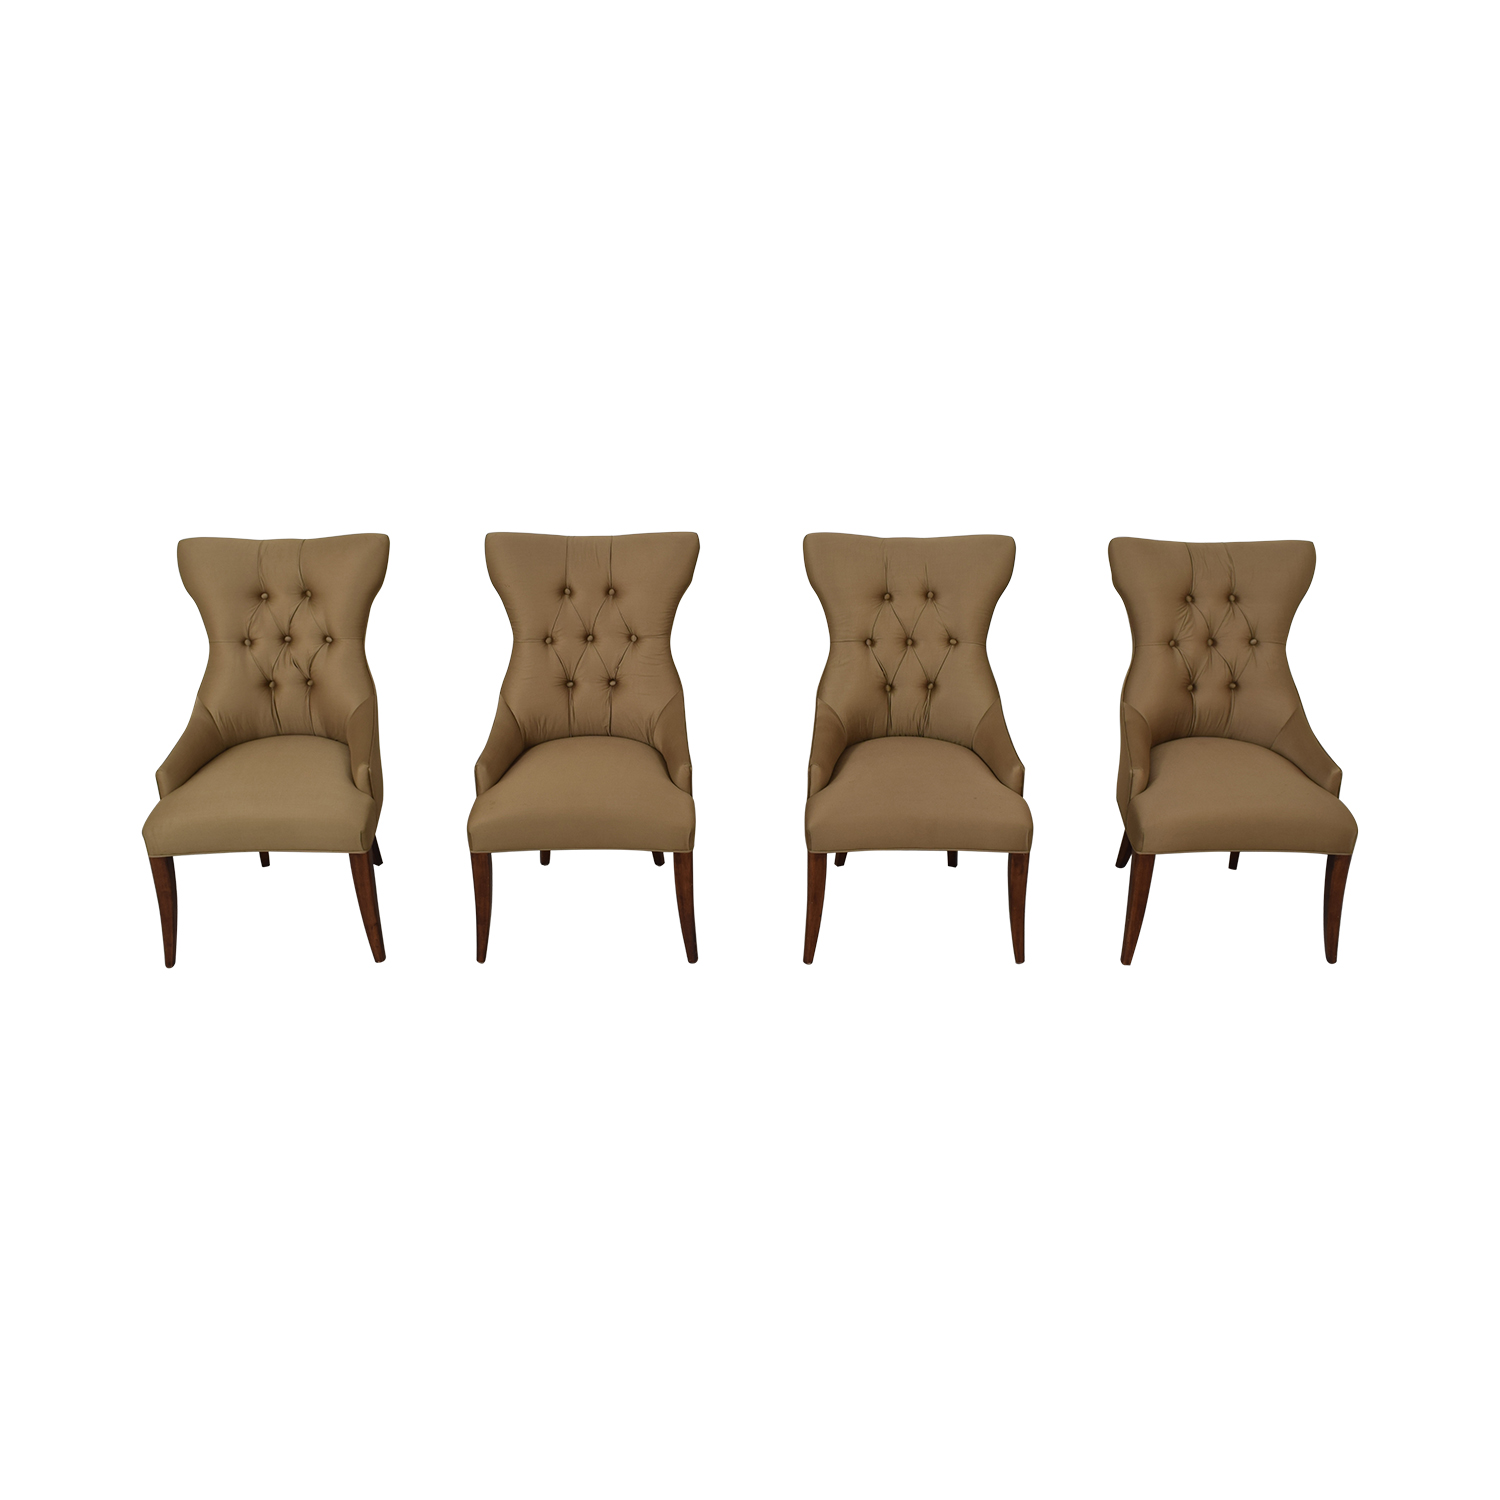 Bernhardt Bernhardt Gray Deco Dining Chairs coupon